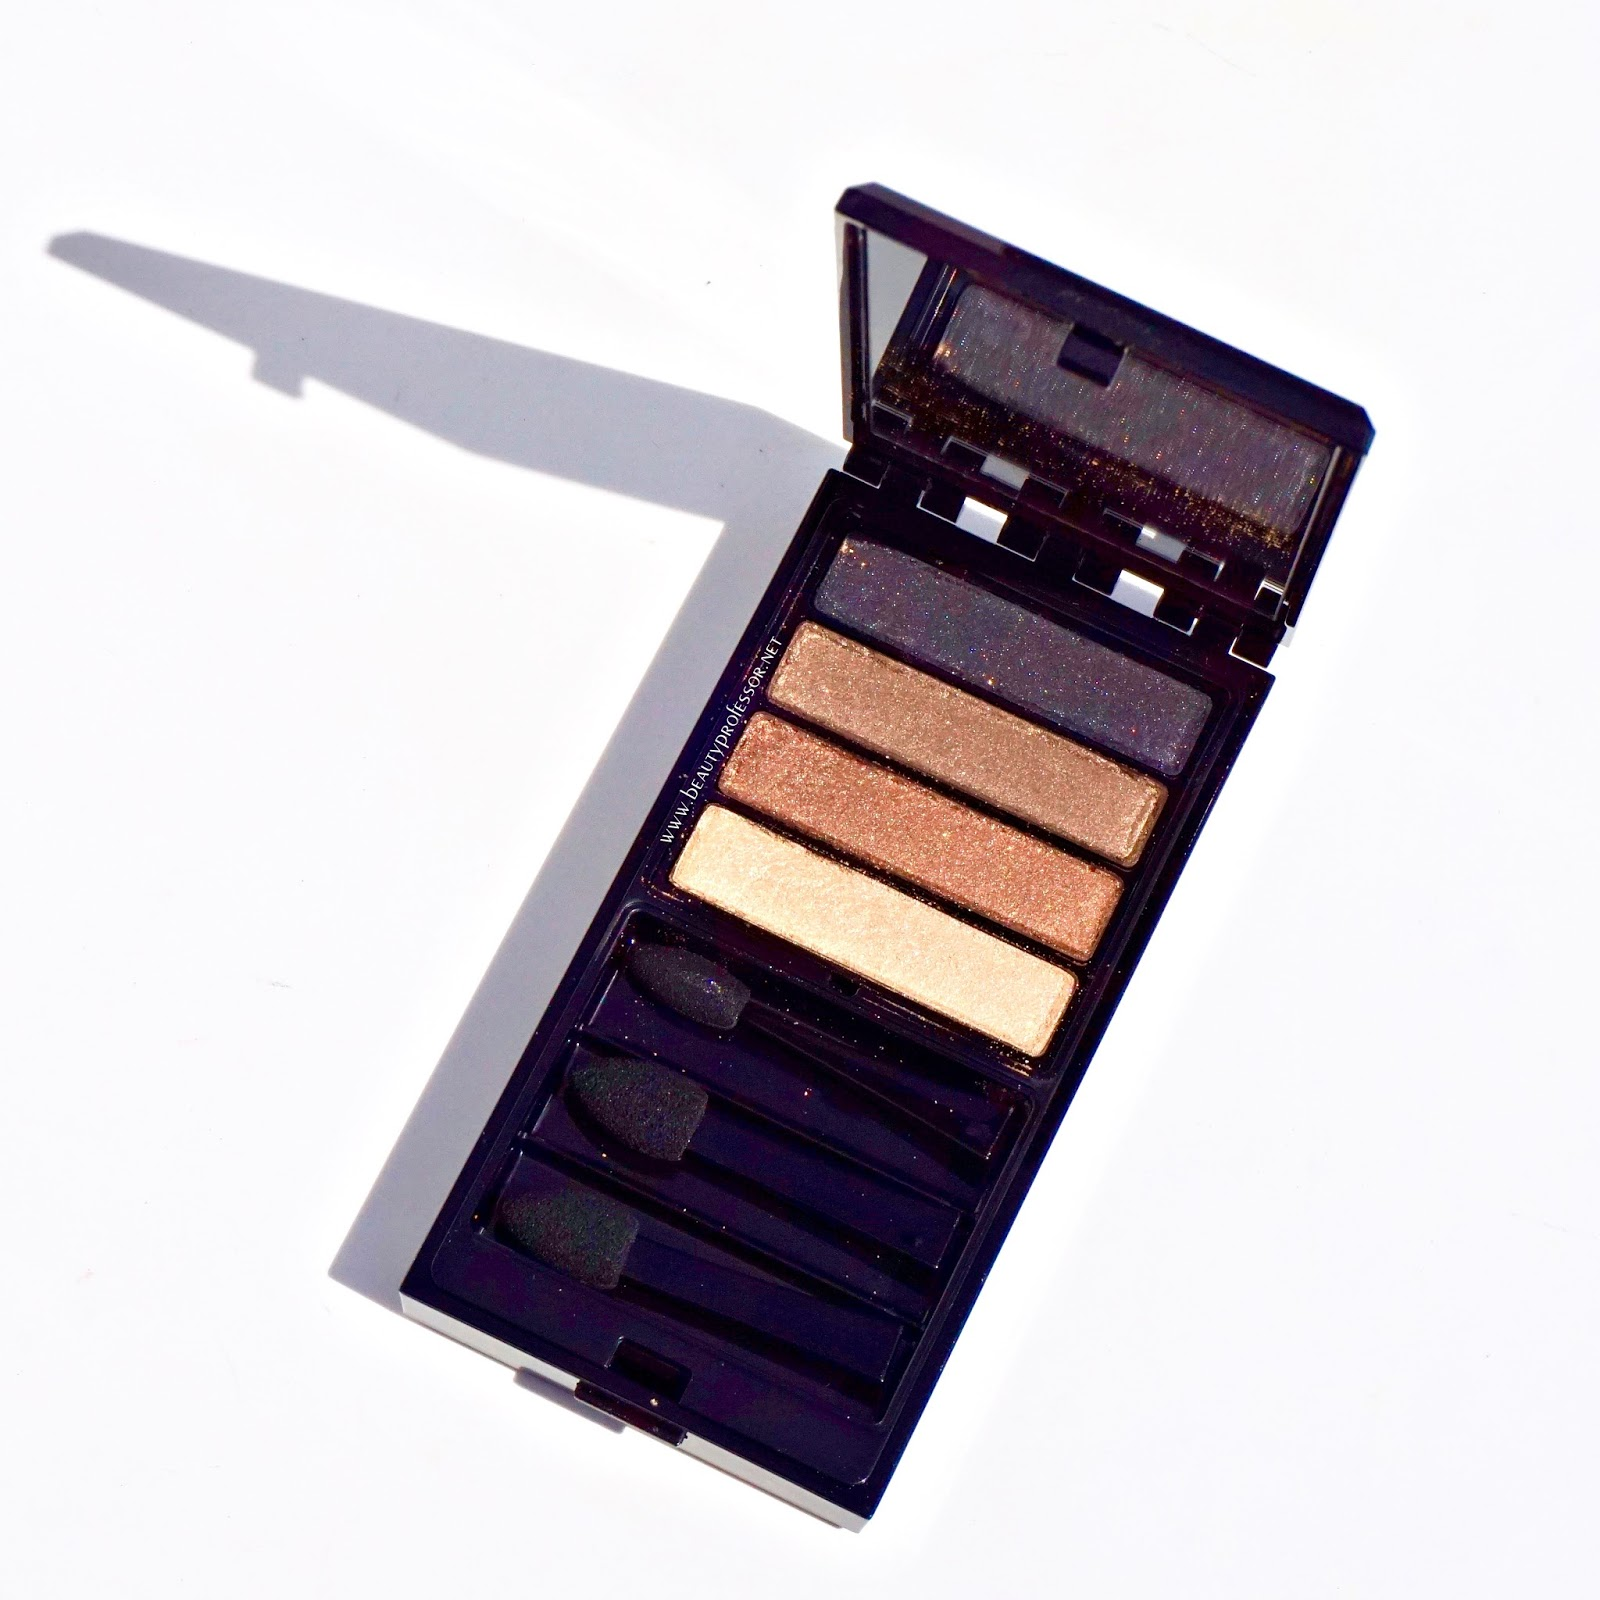 80b9d79db7f Six Eyeshadow Palettes You Need to Meet, New Rodin Lipstick and Springtime  Sale Suggestions